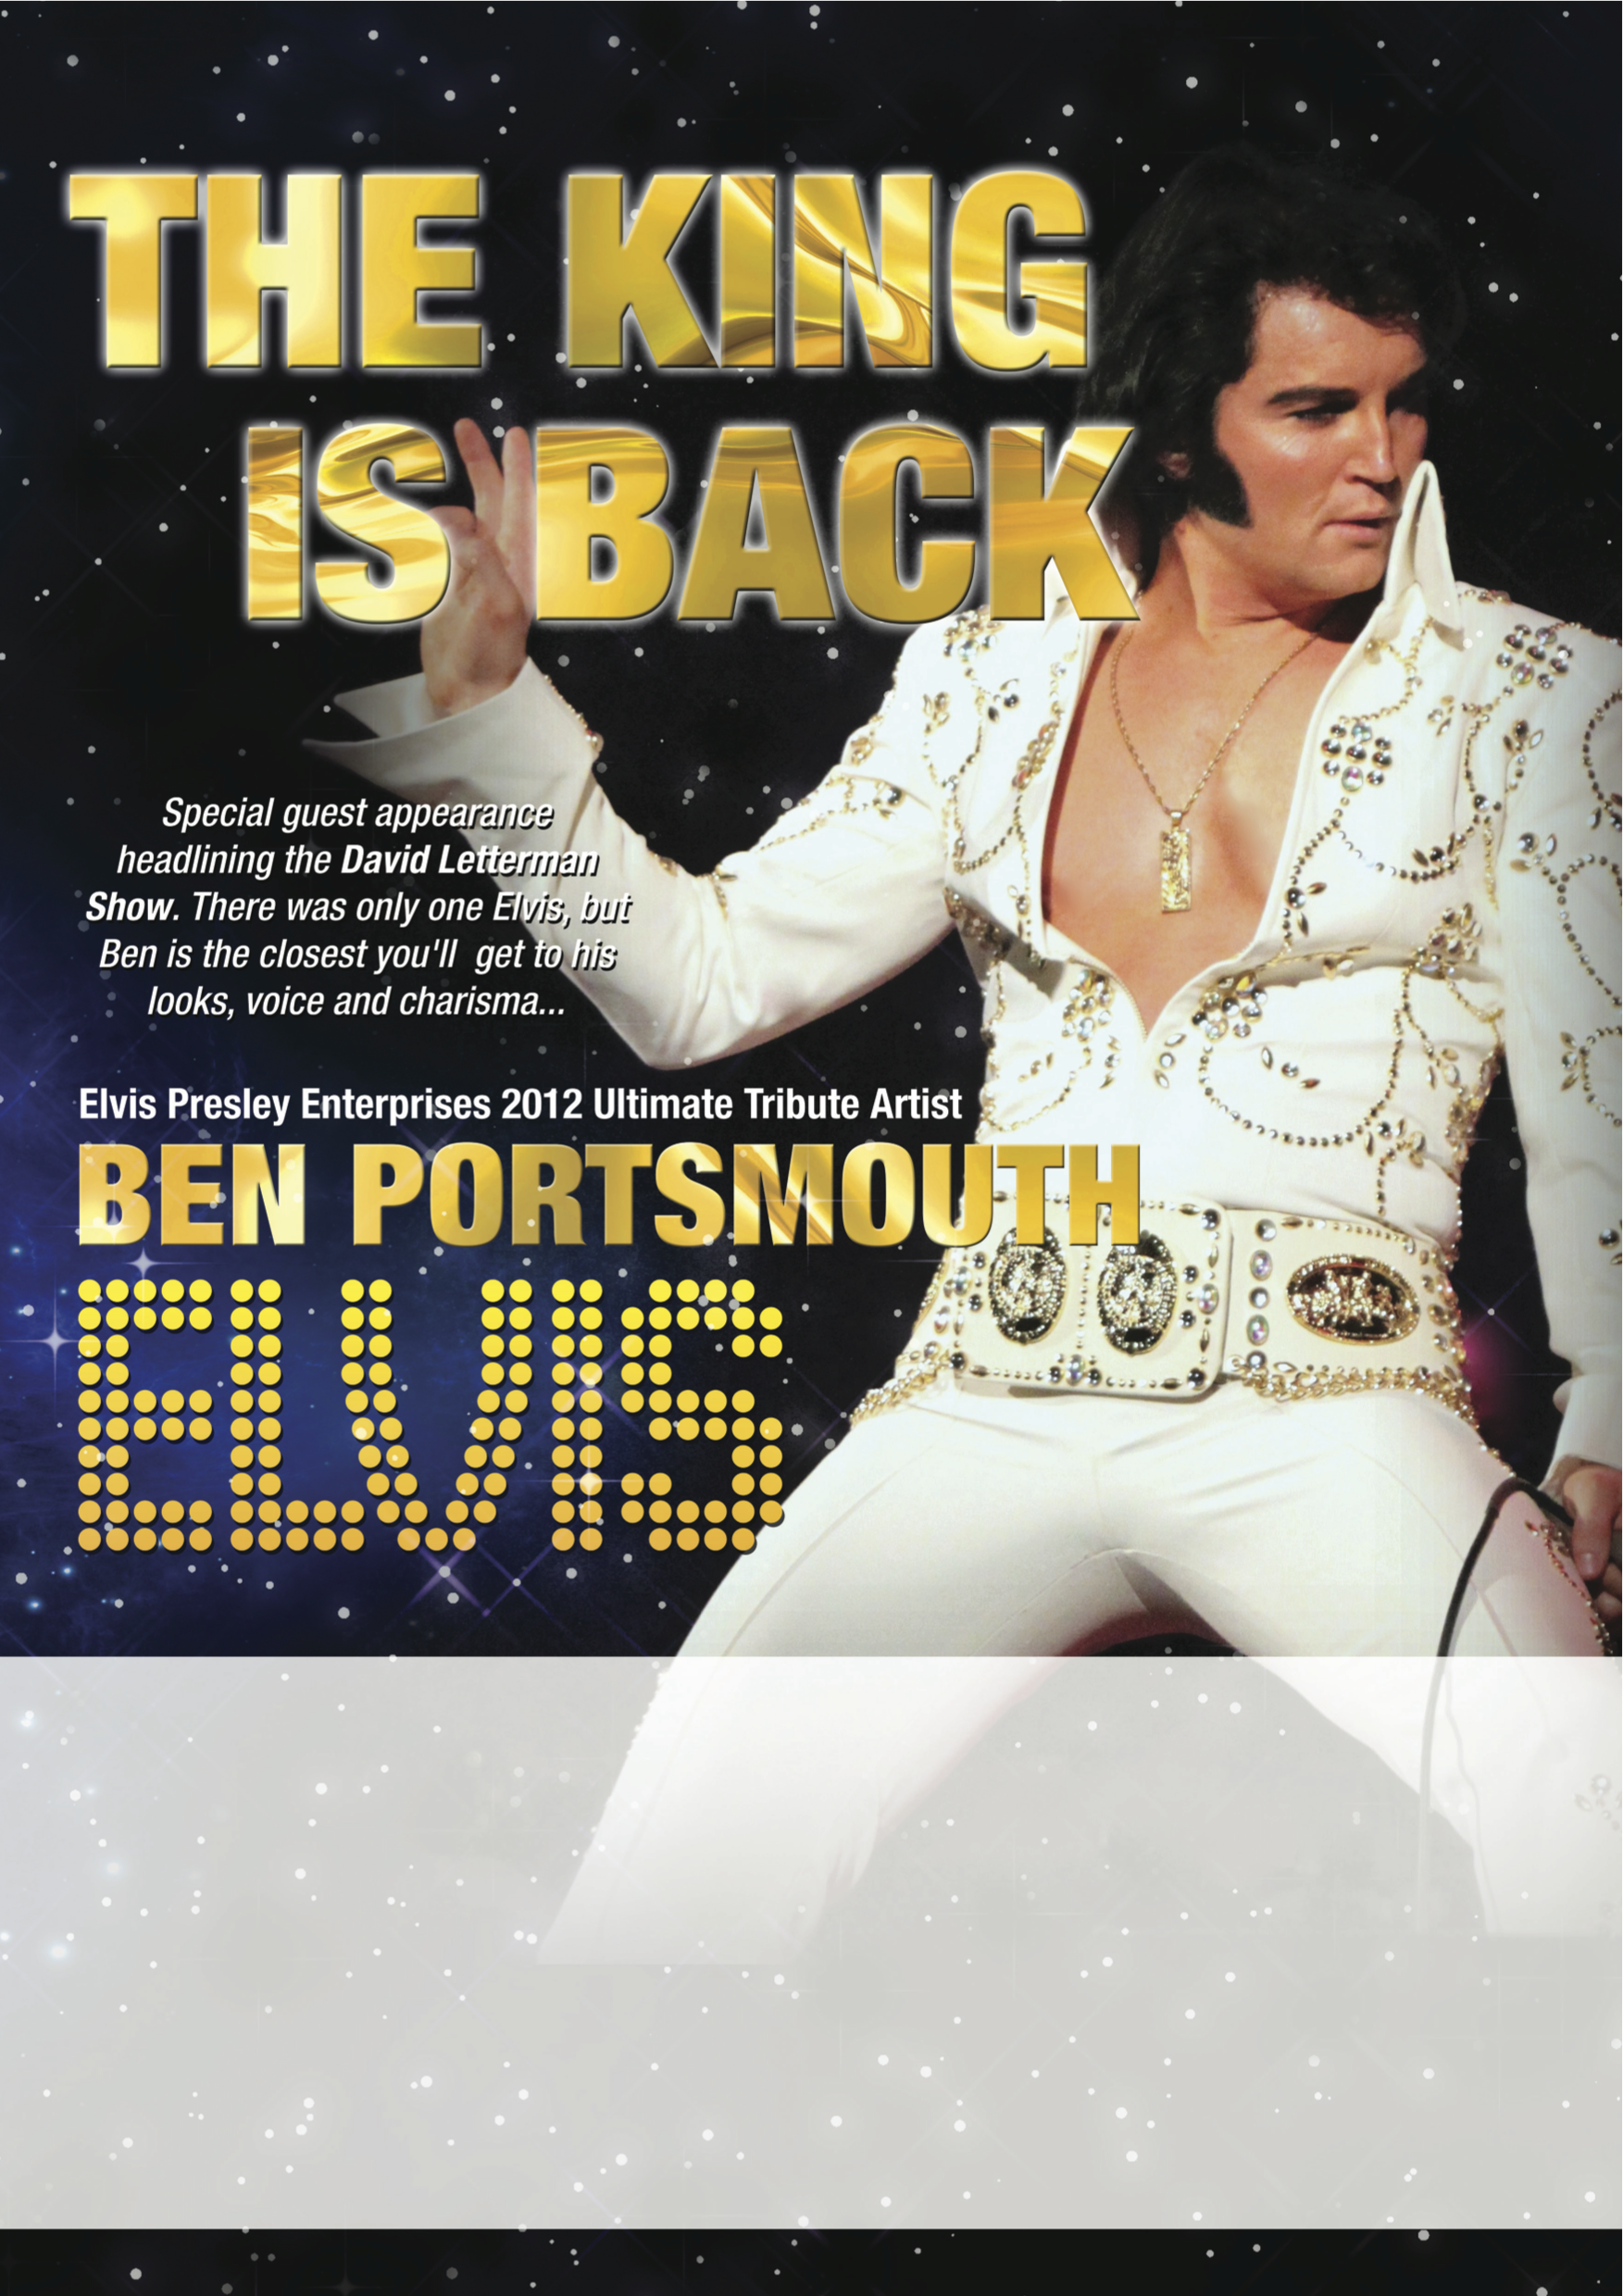 The King Is Back – Ben Portsmouth